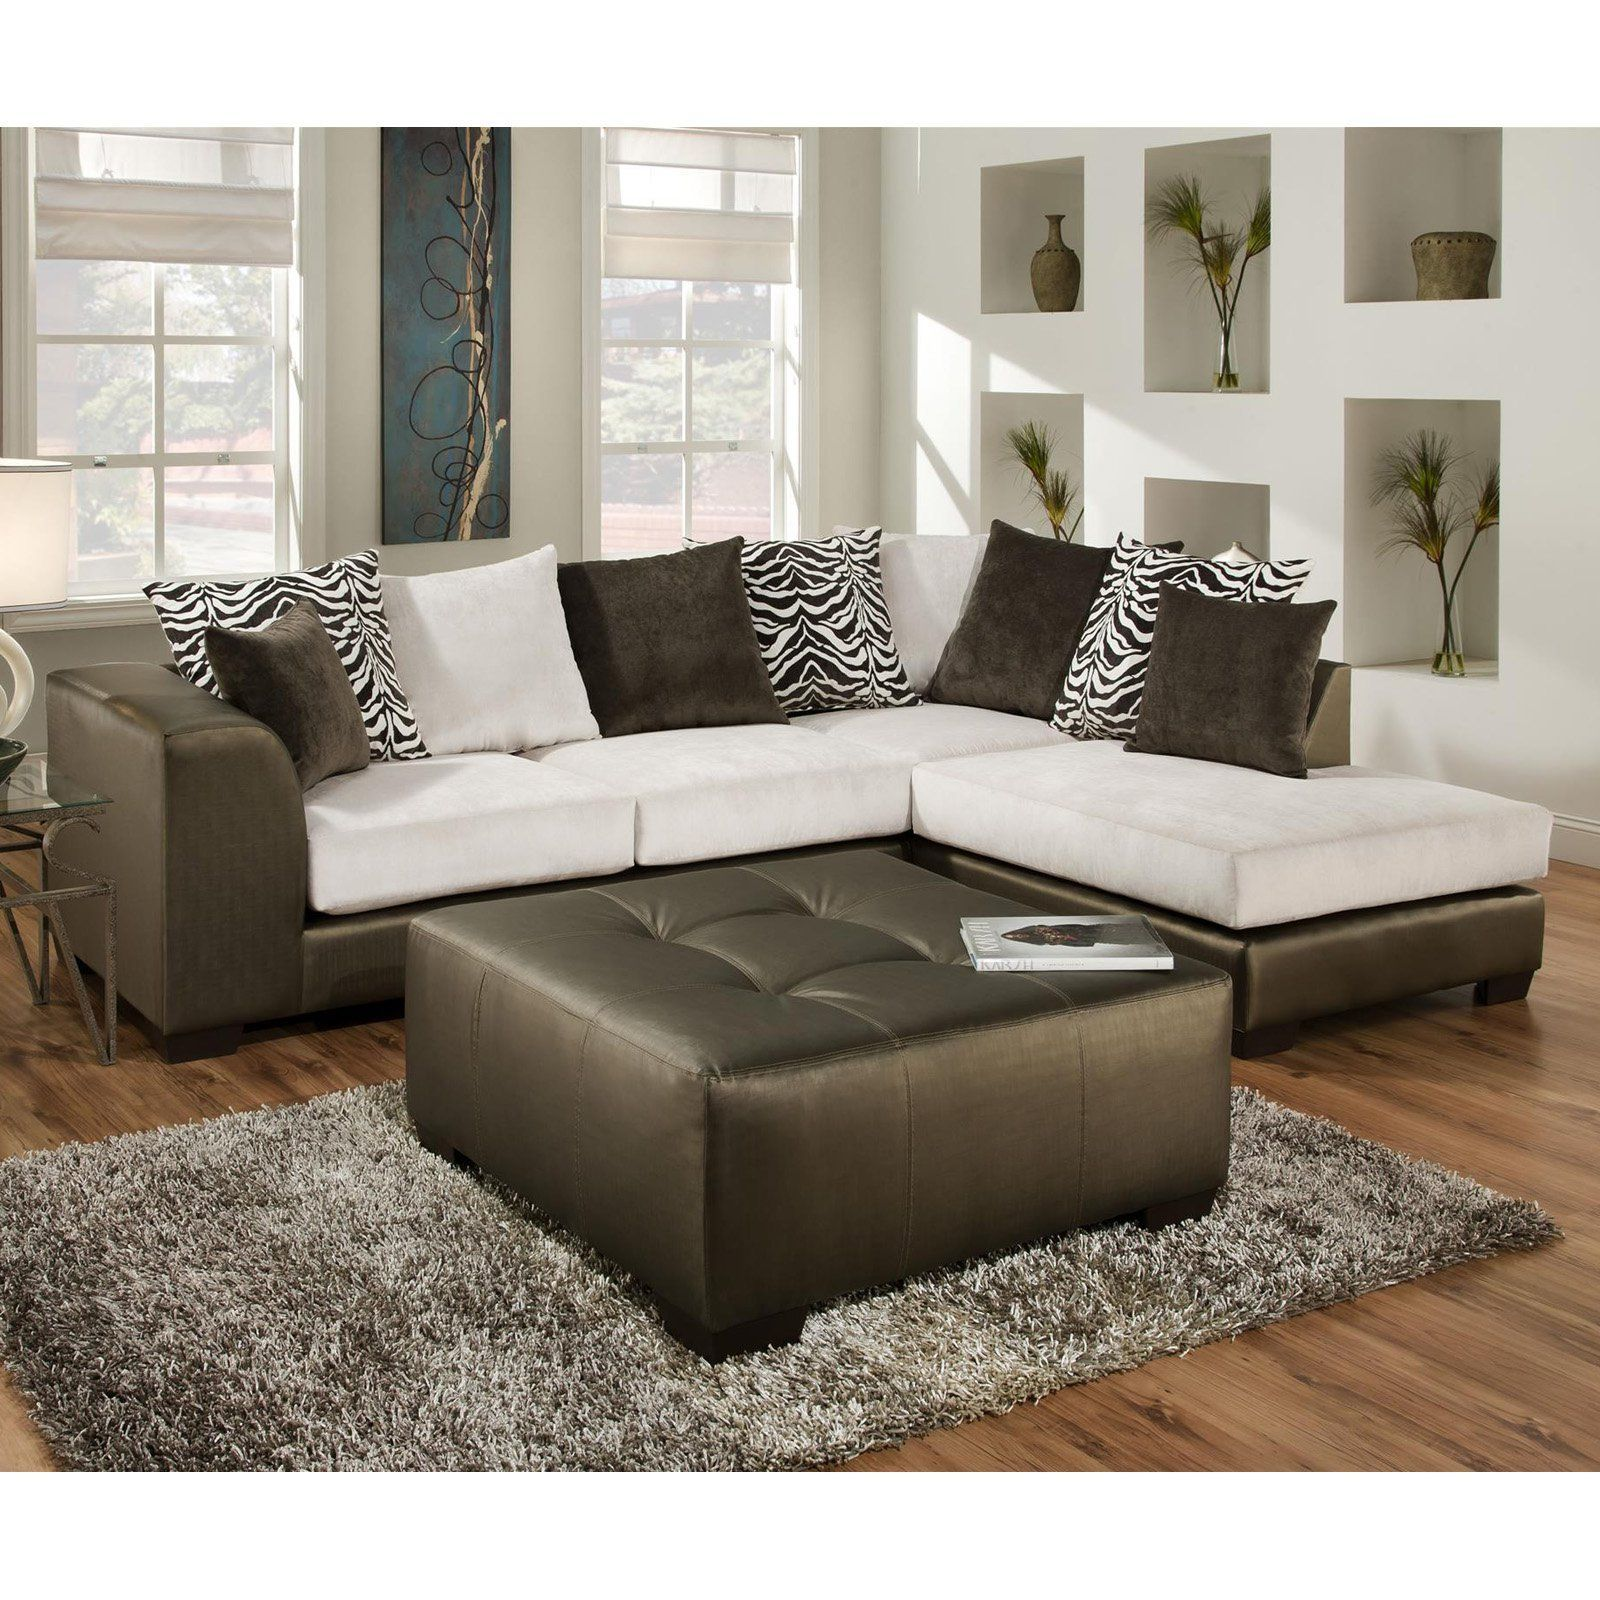 Chelsea home furniture lish sectional sofa sec products